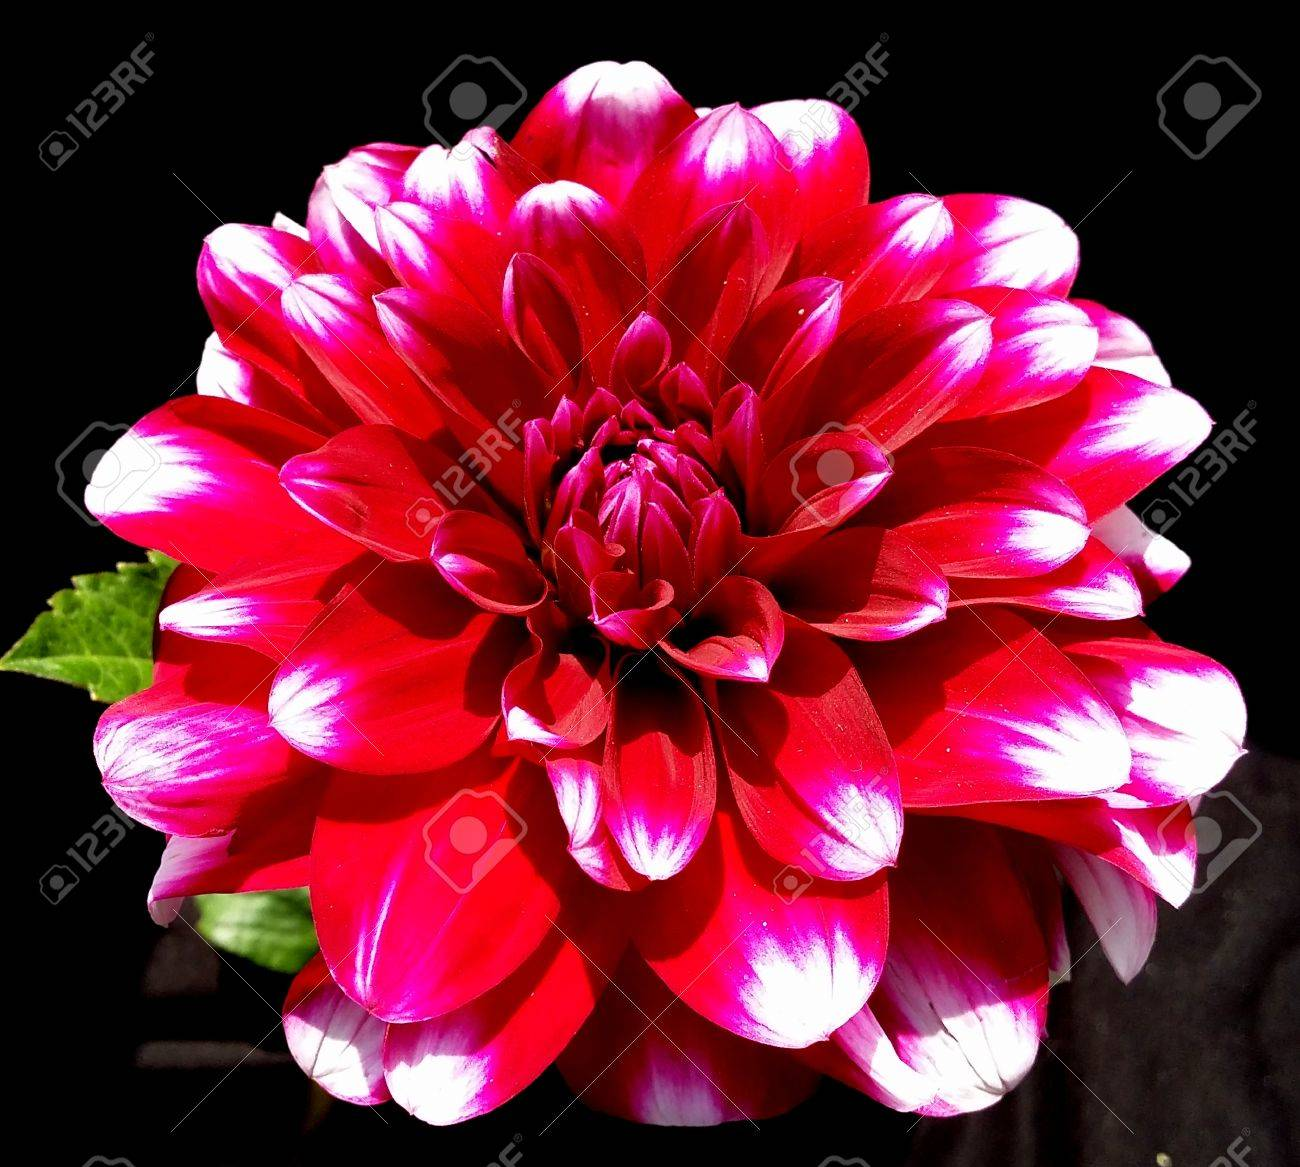 Stunning red dahlia flower on a black background stock photo stock photo stunning red dahlia flower on a black background izmirmasajfo Gallery